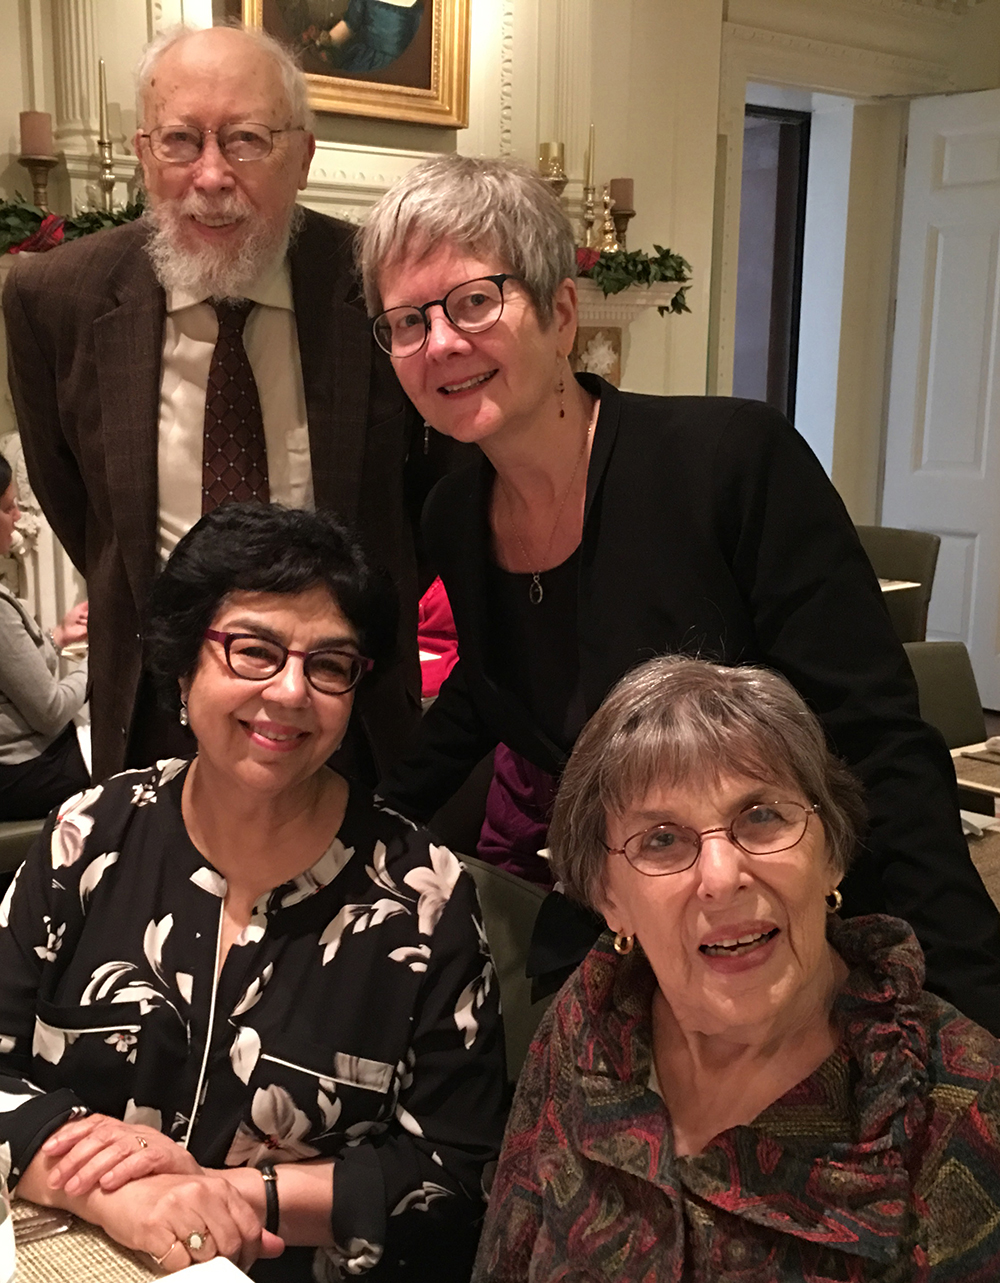 2018 Distinguished Scholar Dr. Elinor Fuchs and friends